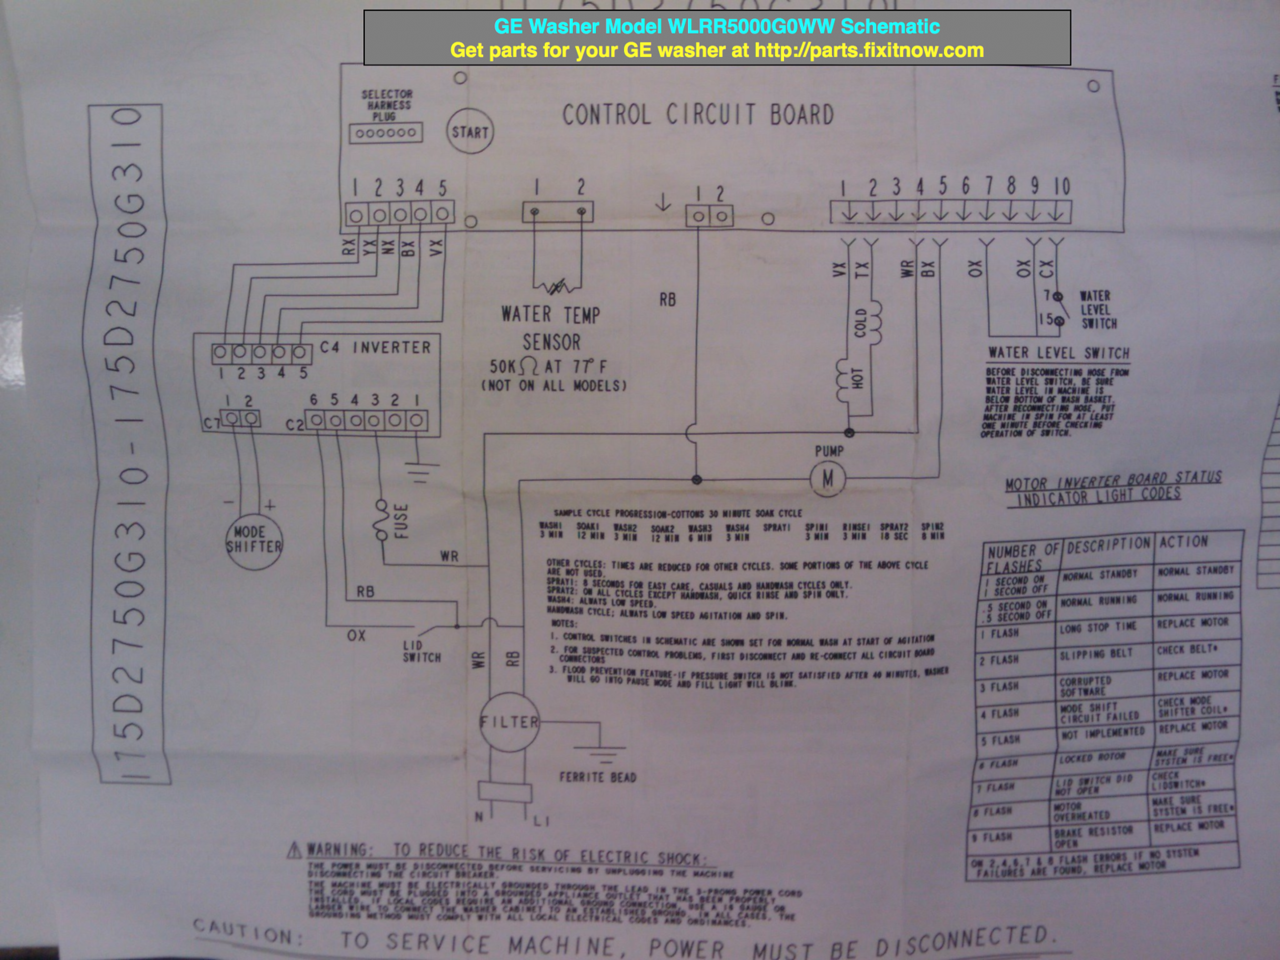 Wiring diagrams and schematics appliantology ge washer model wlrr5000g0ww schematic swarovskicordoba